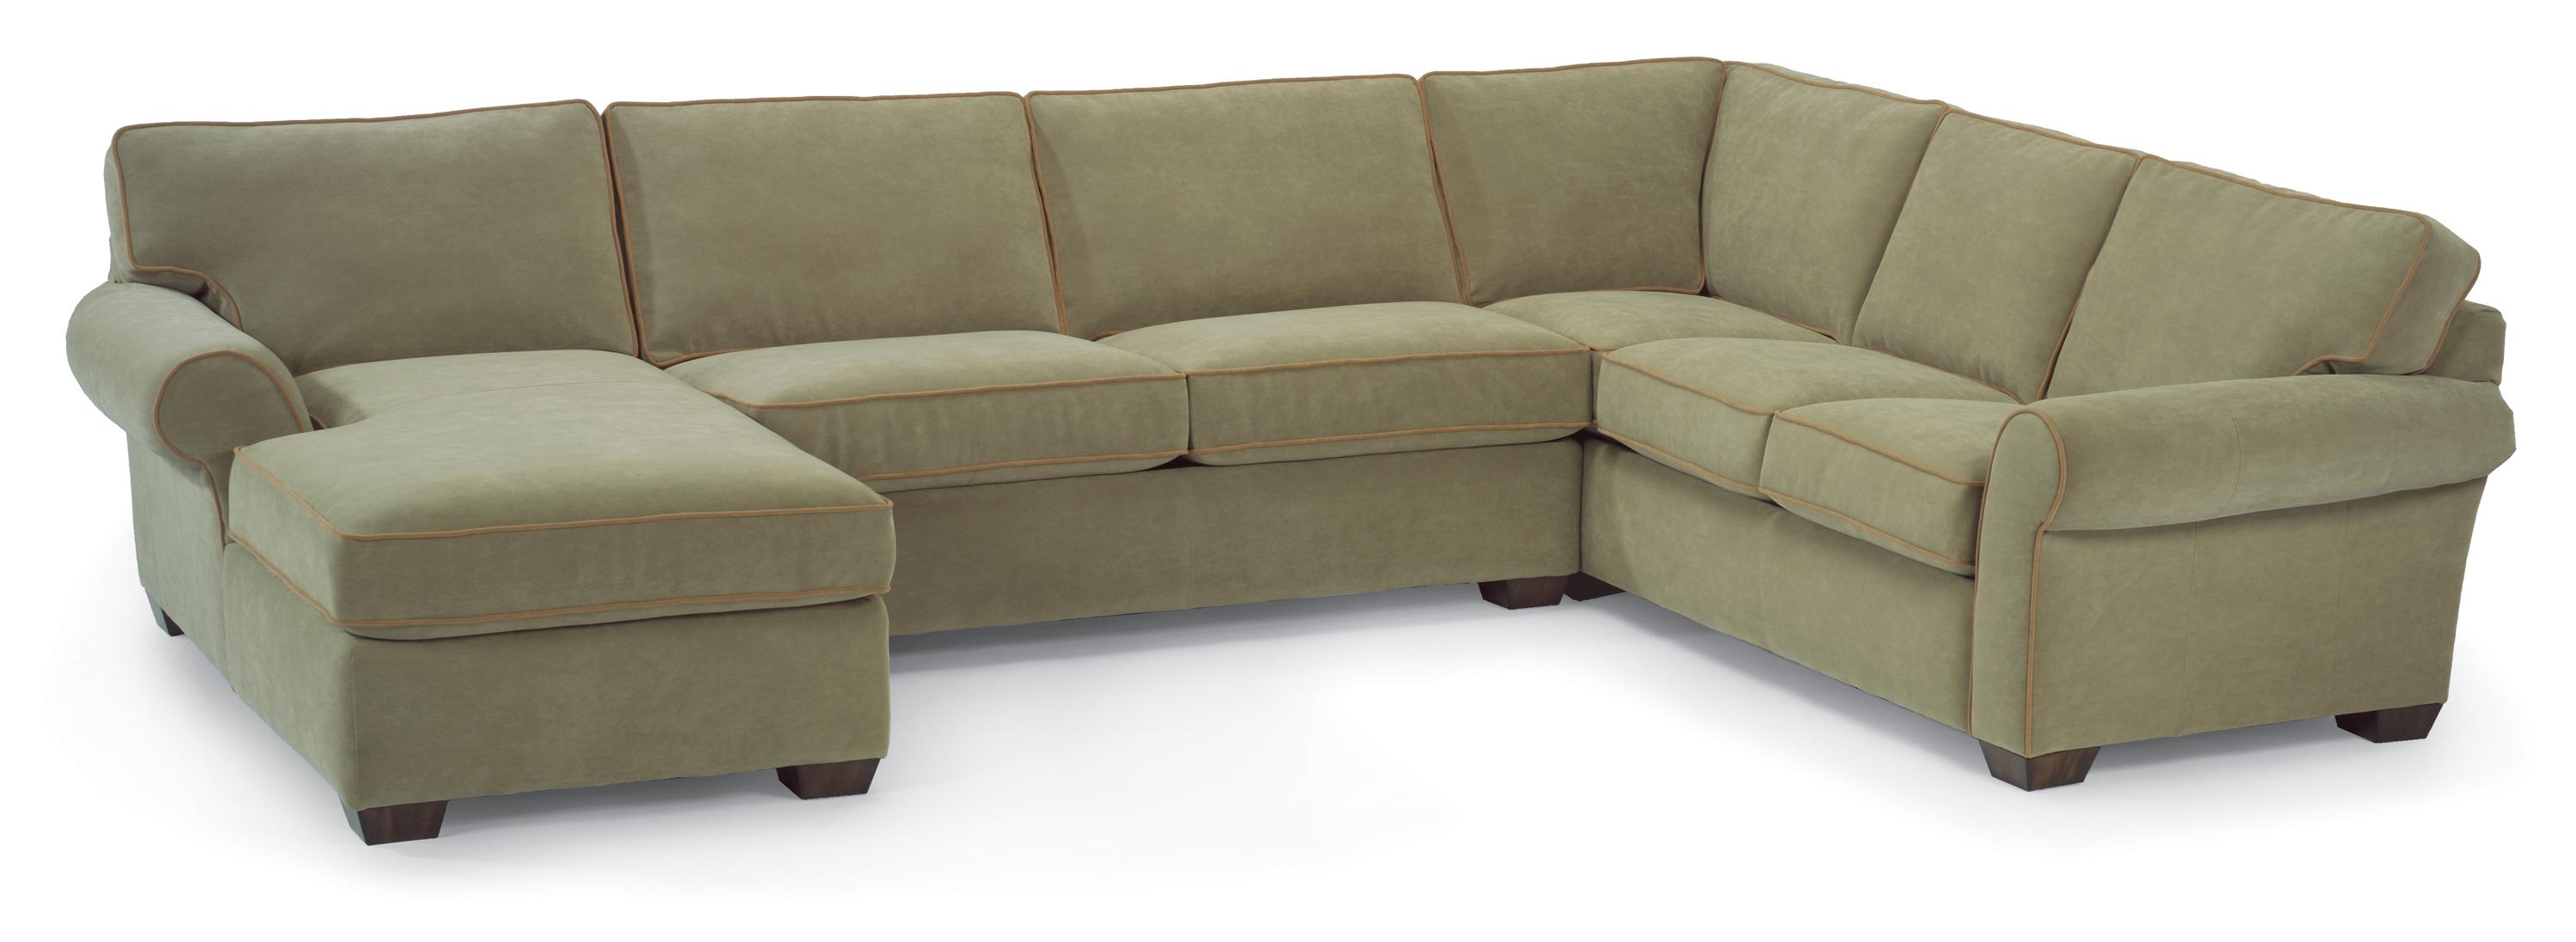 Vail Stationary Sectional Sofa by Flexsteel at Fashion Furniture